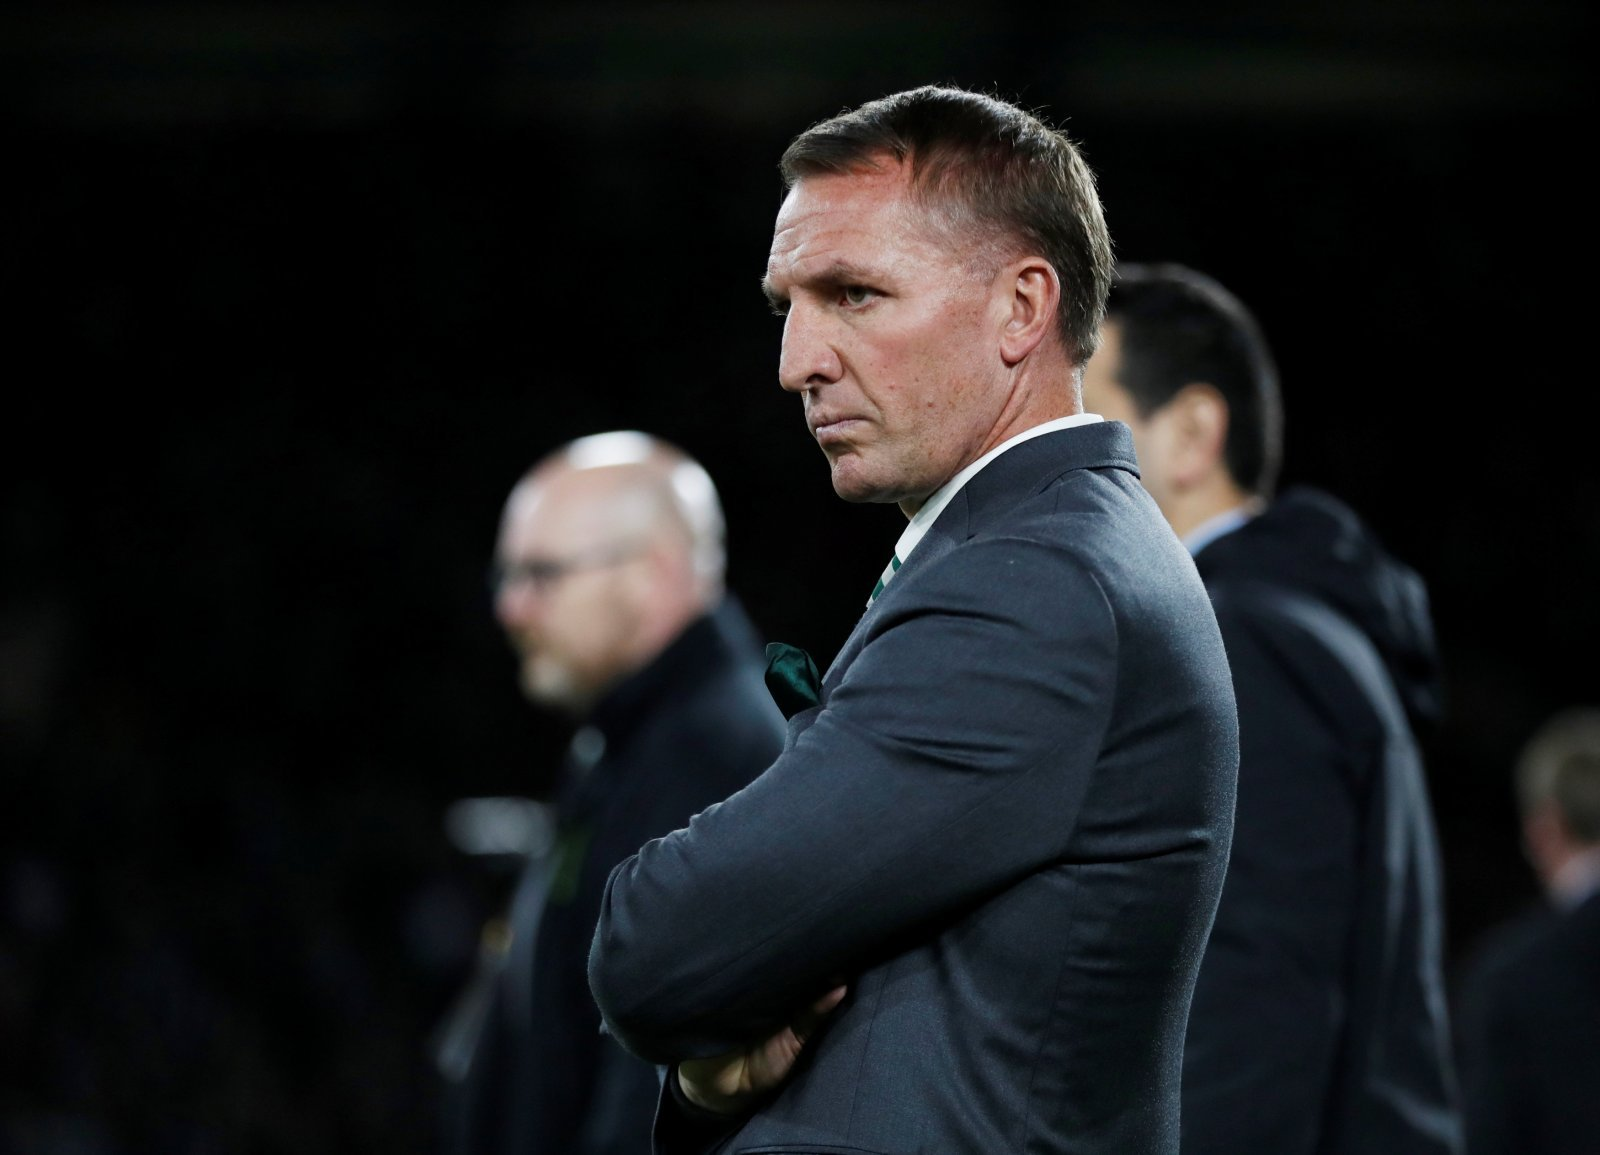 Celtic fans react to Rodgers' controversial comments on players ahead of Semi-Final